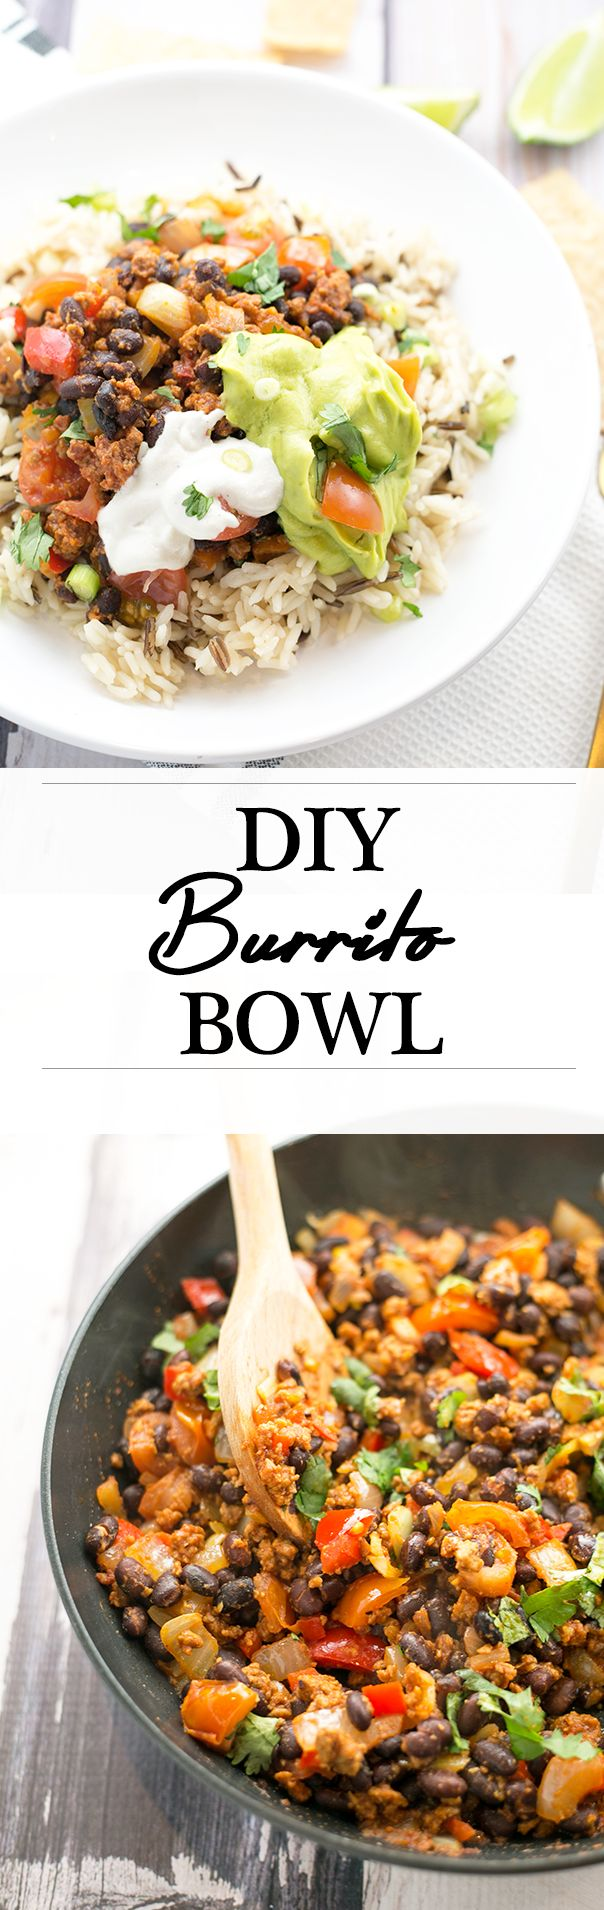 DIY Vegan Burrito Bowl (That Doesn't Have A Wall Around It)